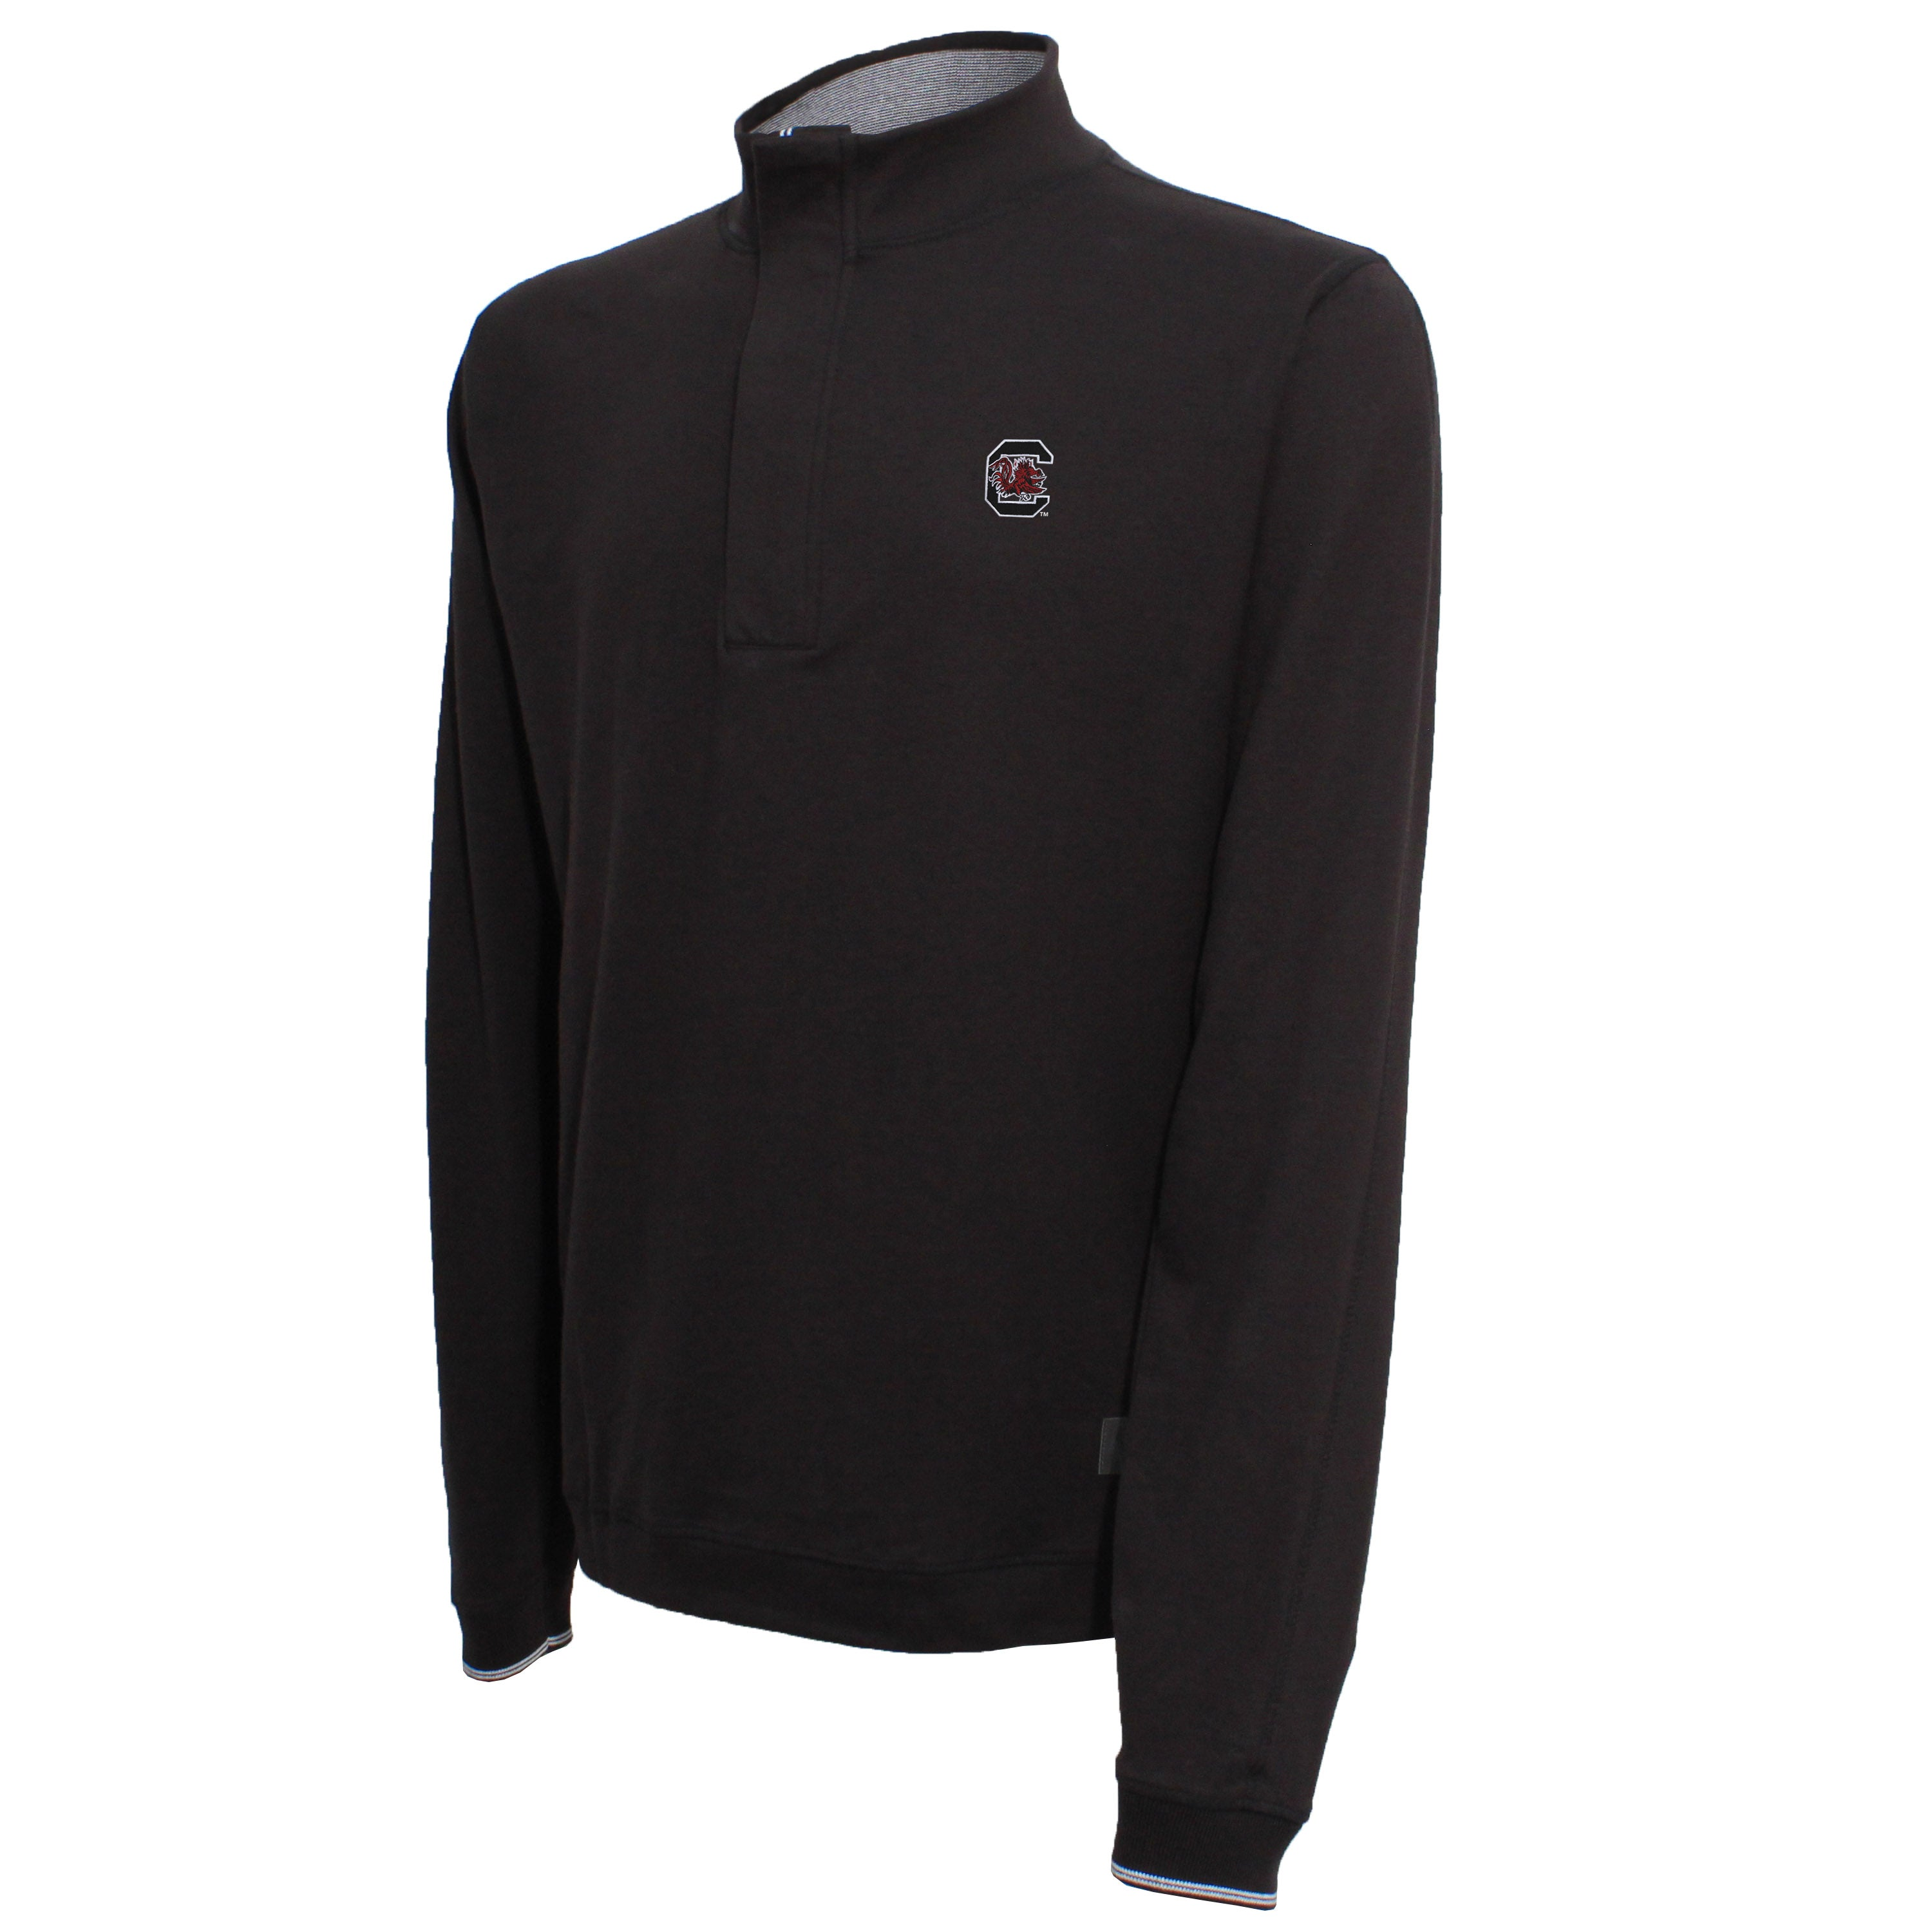 Vesi South Carolina Men's Black Quarter Zip Pullover